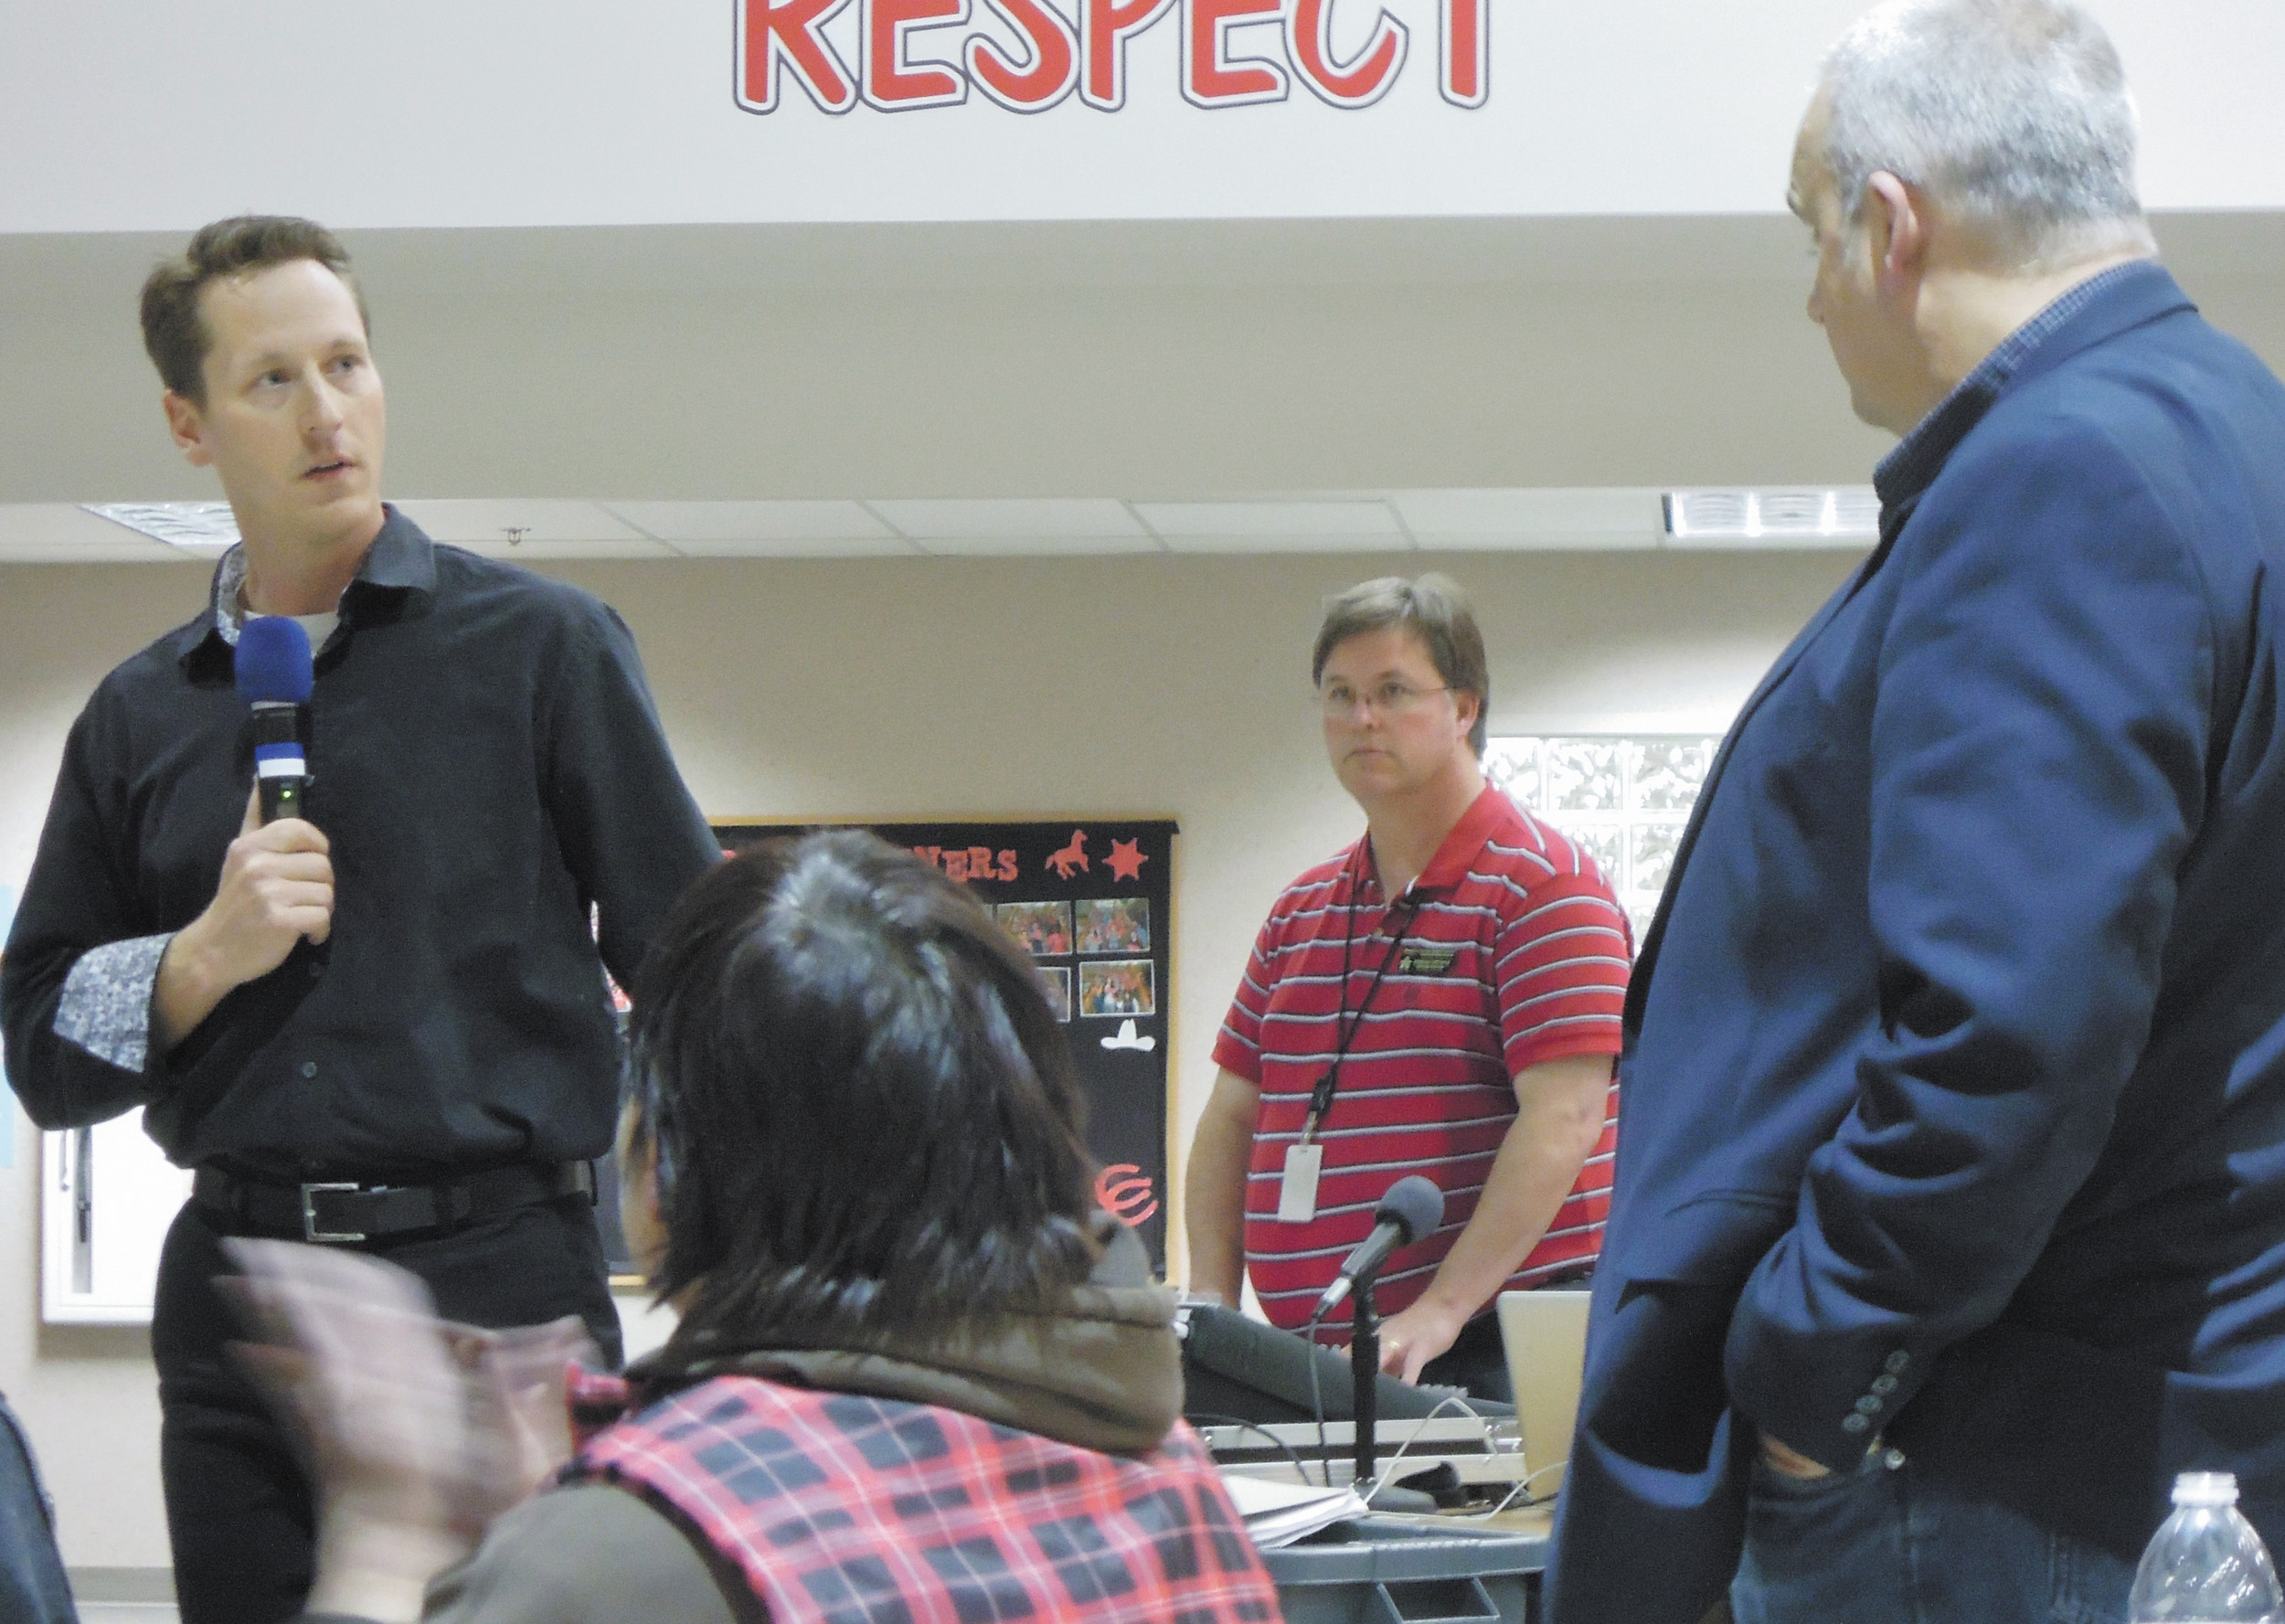 Teacher Kevin DiPasquale confronts school board president Kevin Larsen about the lack of teacher trust in the district and other concerns during the March 3 Board Unplugged meeting at Cimarron Middle School.